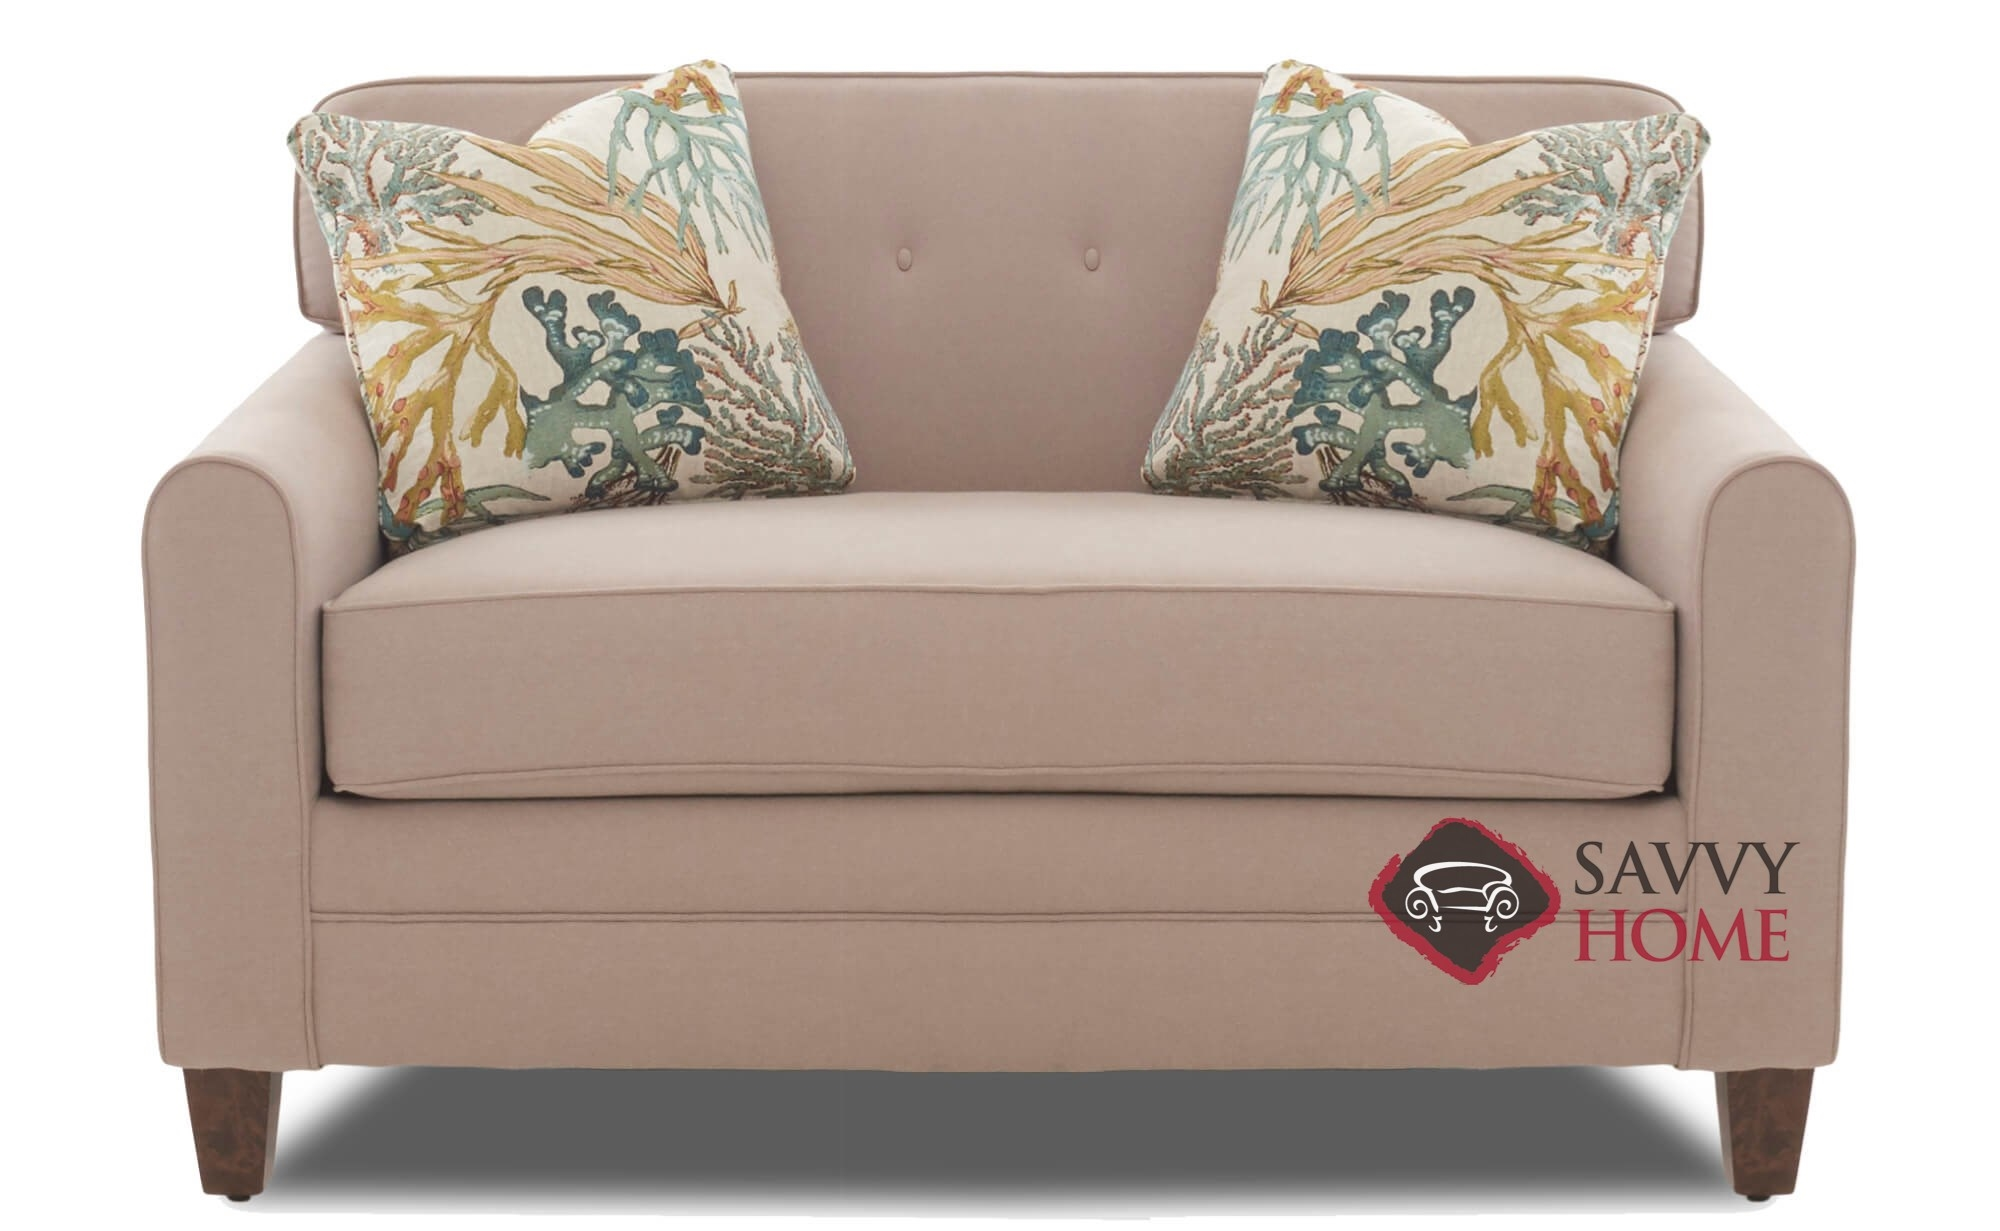 Free Furniture Perth Perth By Savvy Fabric Sleeper Sofas Chair By Savvy Is